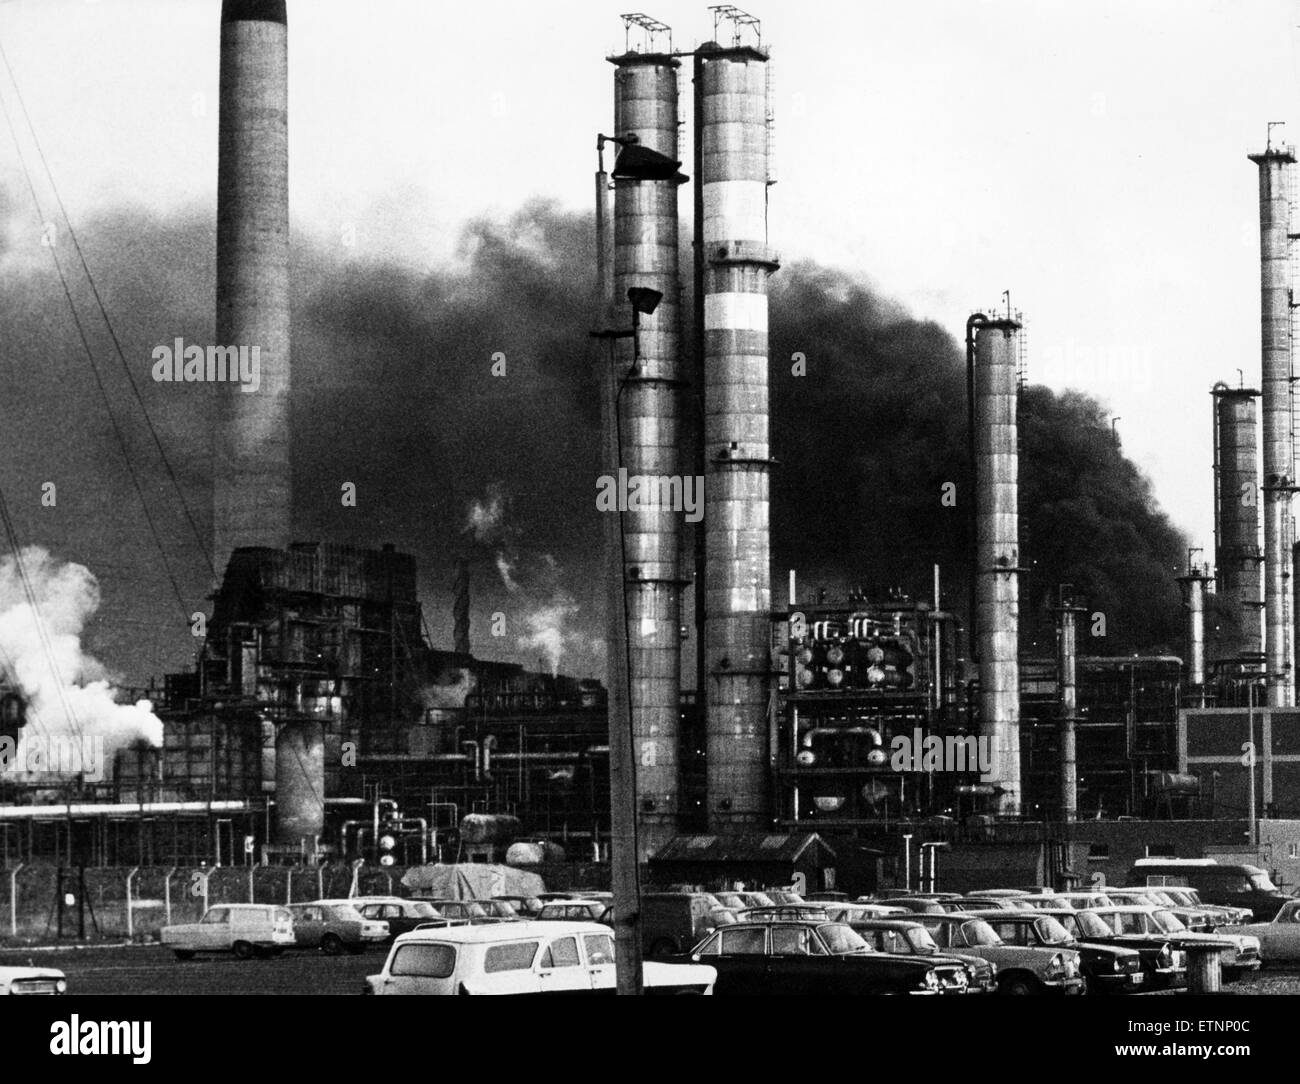 60 firemen tackle blaze at ICI North Tees near Billingham, 2nd January 1972. The fire was located at the No.1 Aromatic - Stock Image